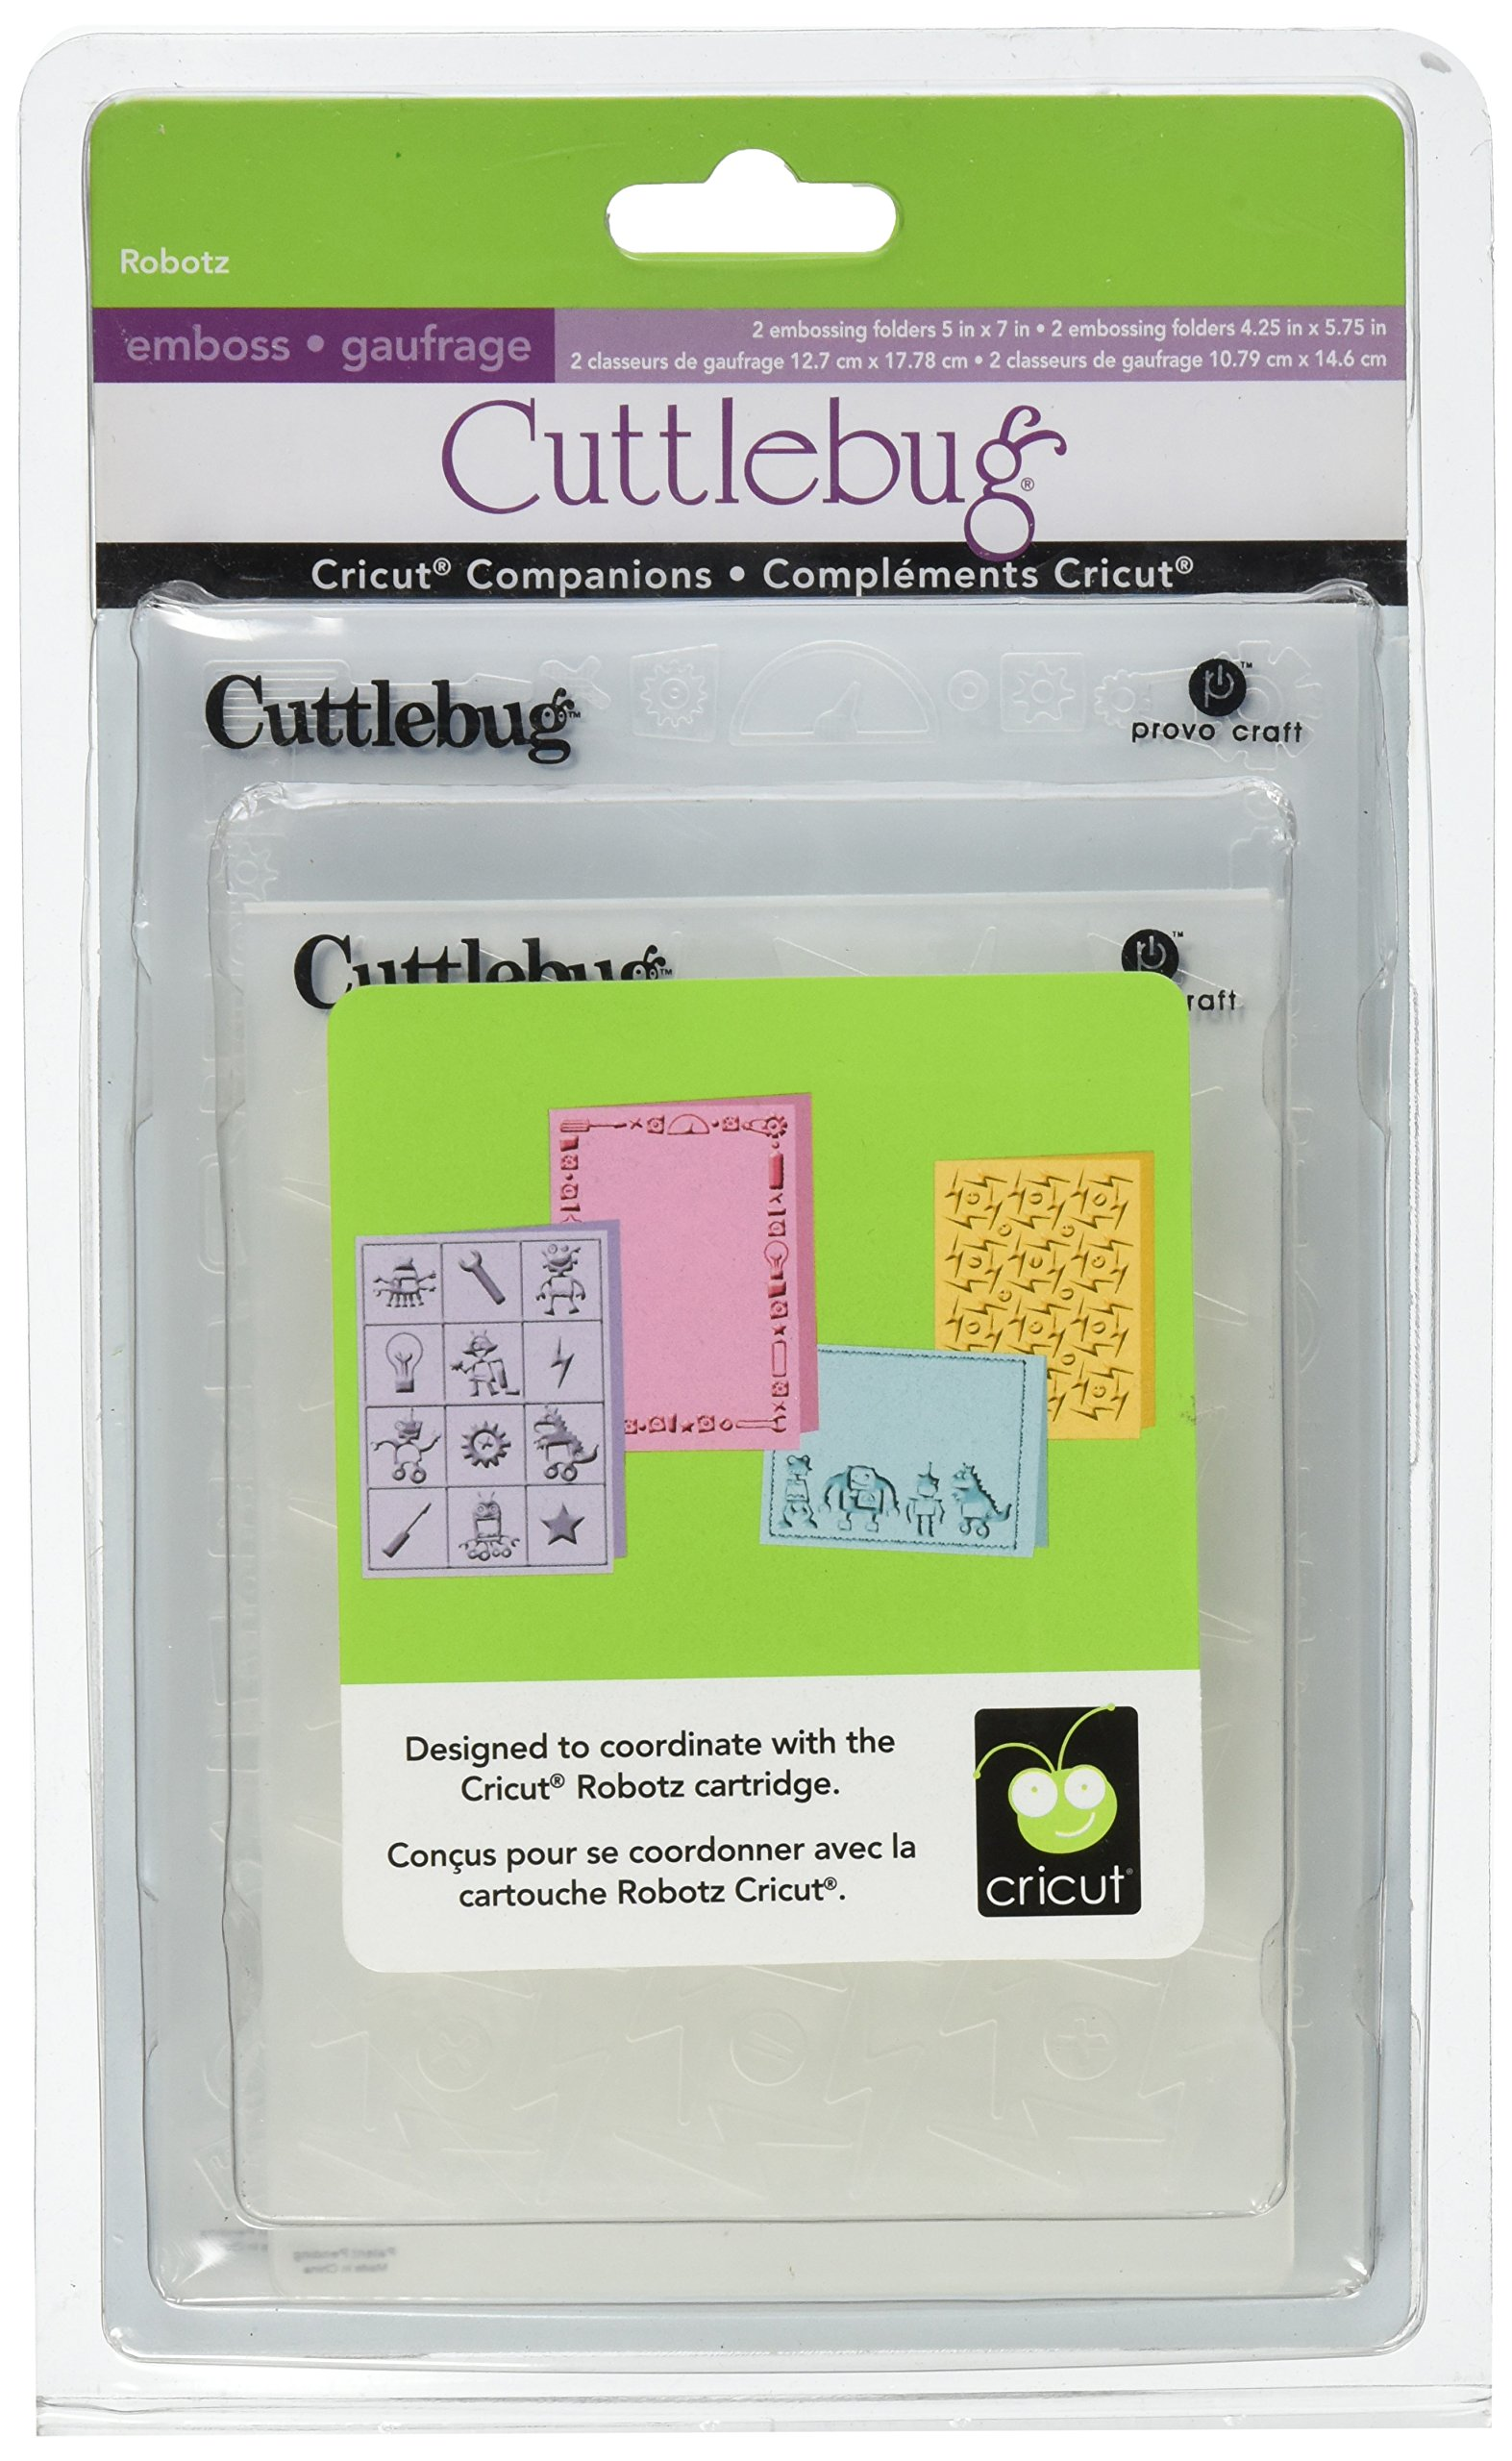 Cuttlebug Provo Craft Cricut Companion Embossing Folder Bundle, Robotz